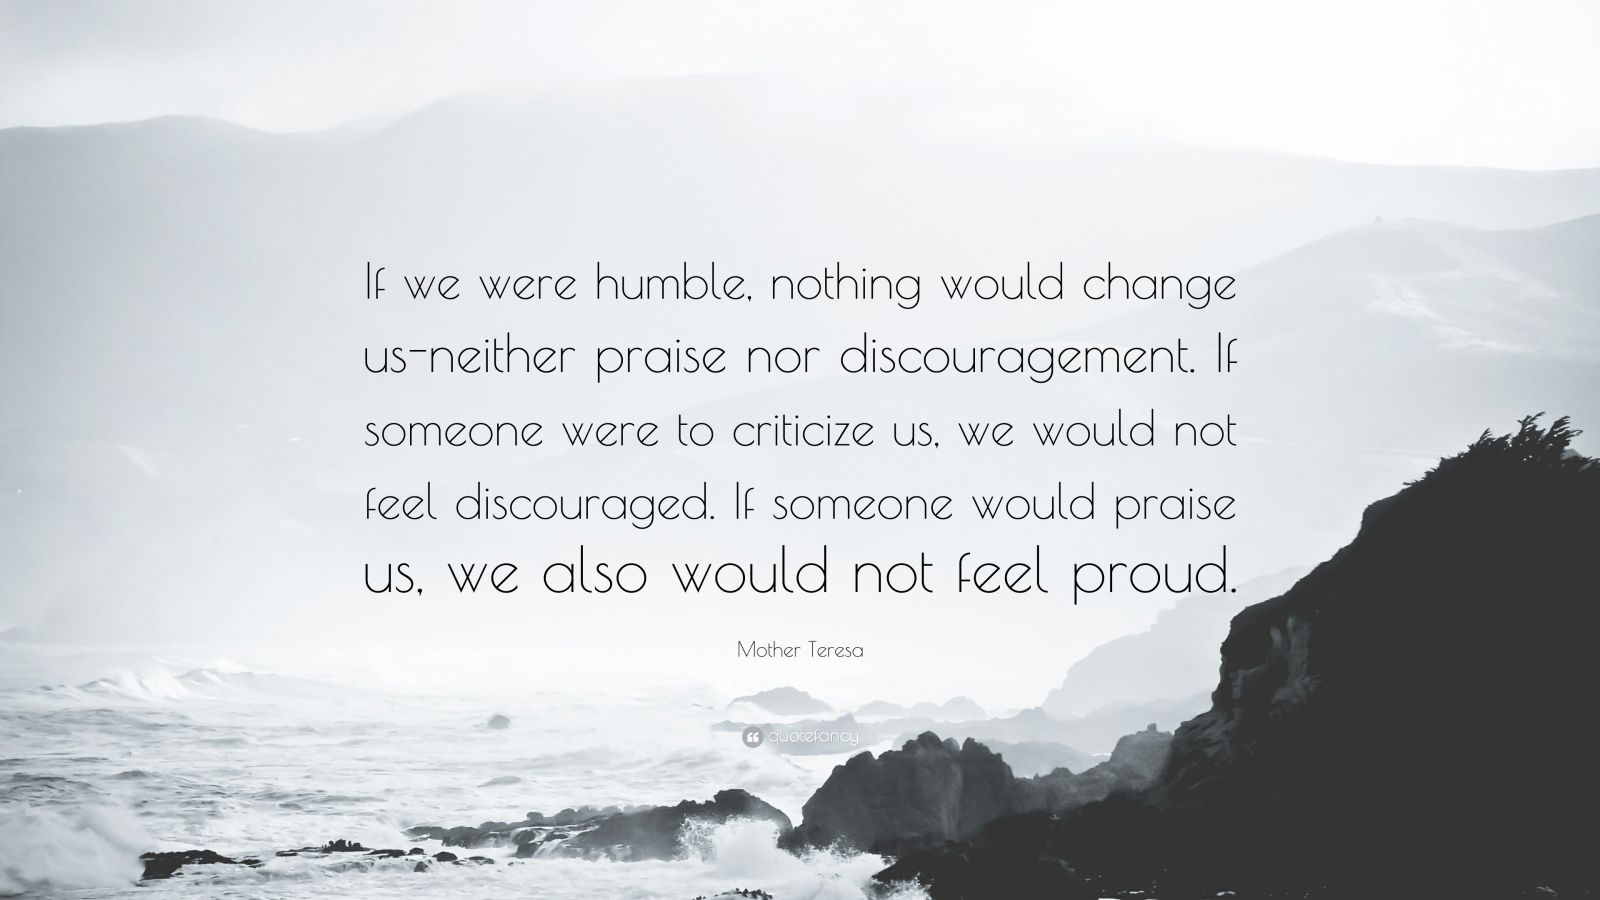 """Mother Teresa Quote: """"If we were humble, nothing would change us-neither praise nor discouragement. If someone were to criticize us, we would not feel discouraged. If someone would praise us, we also would not feel proud."""""""